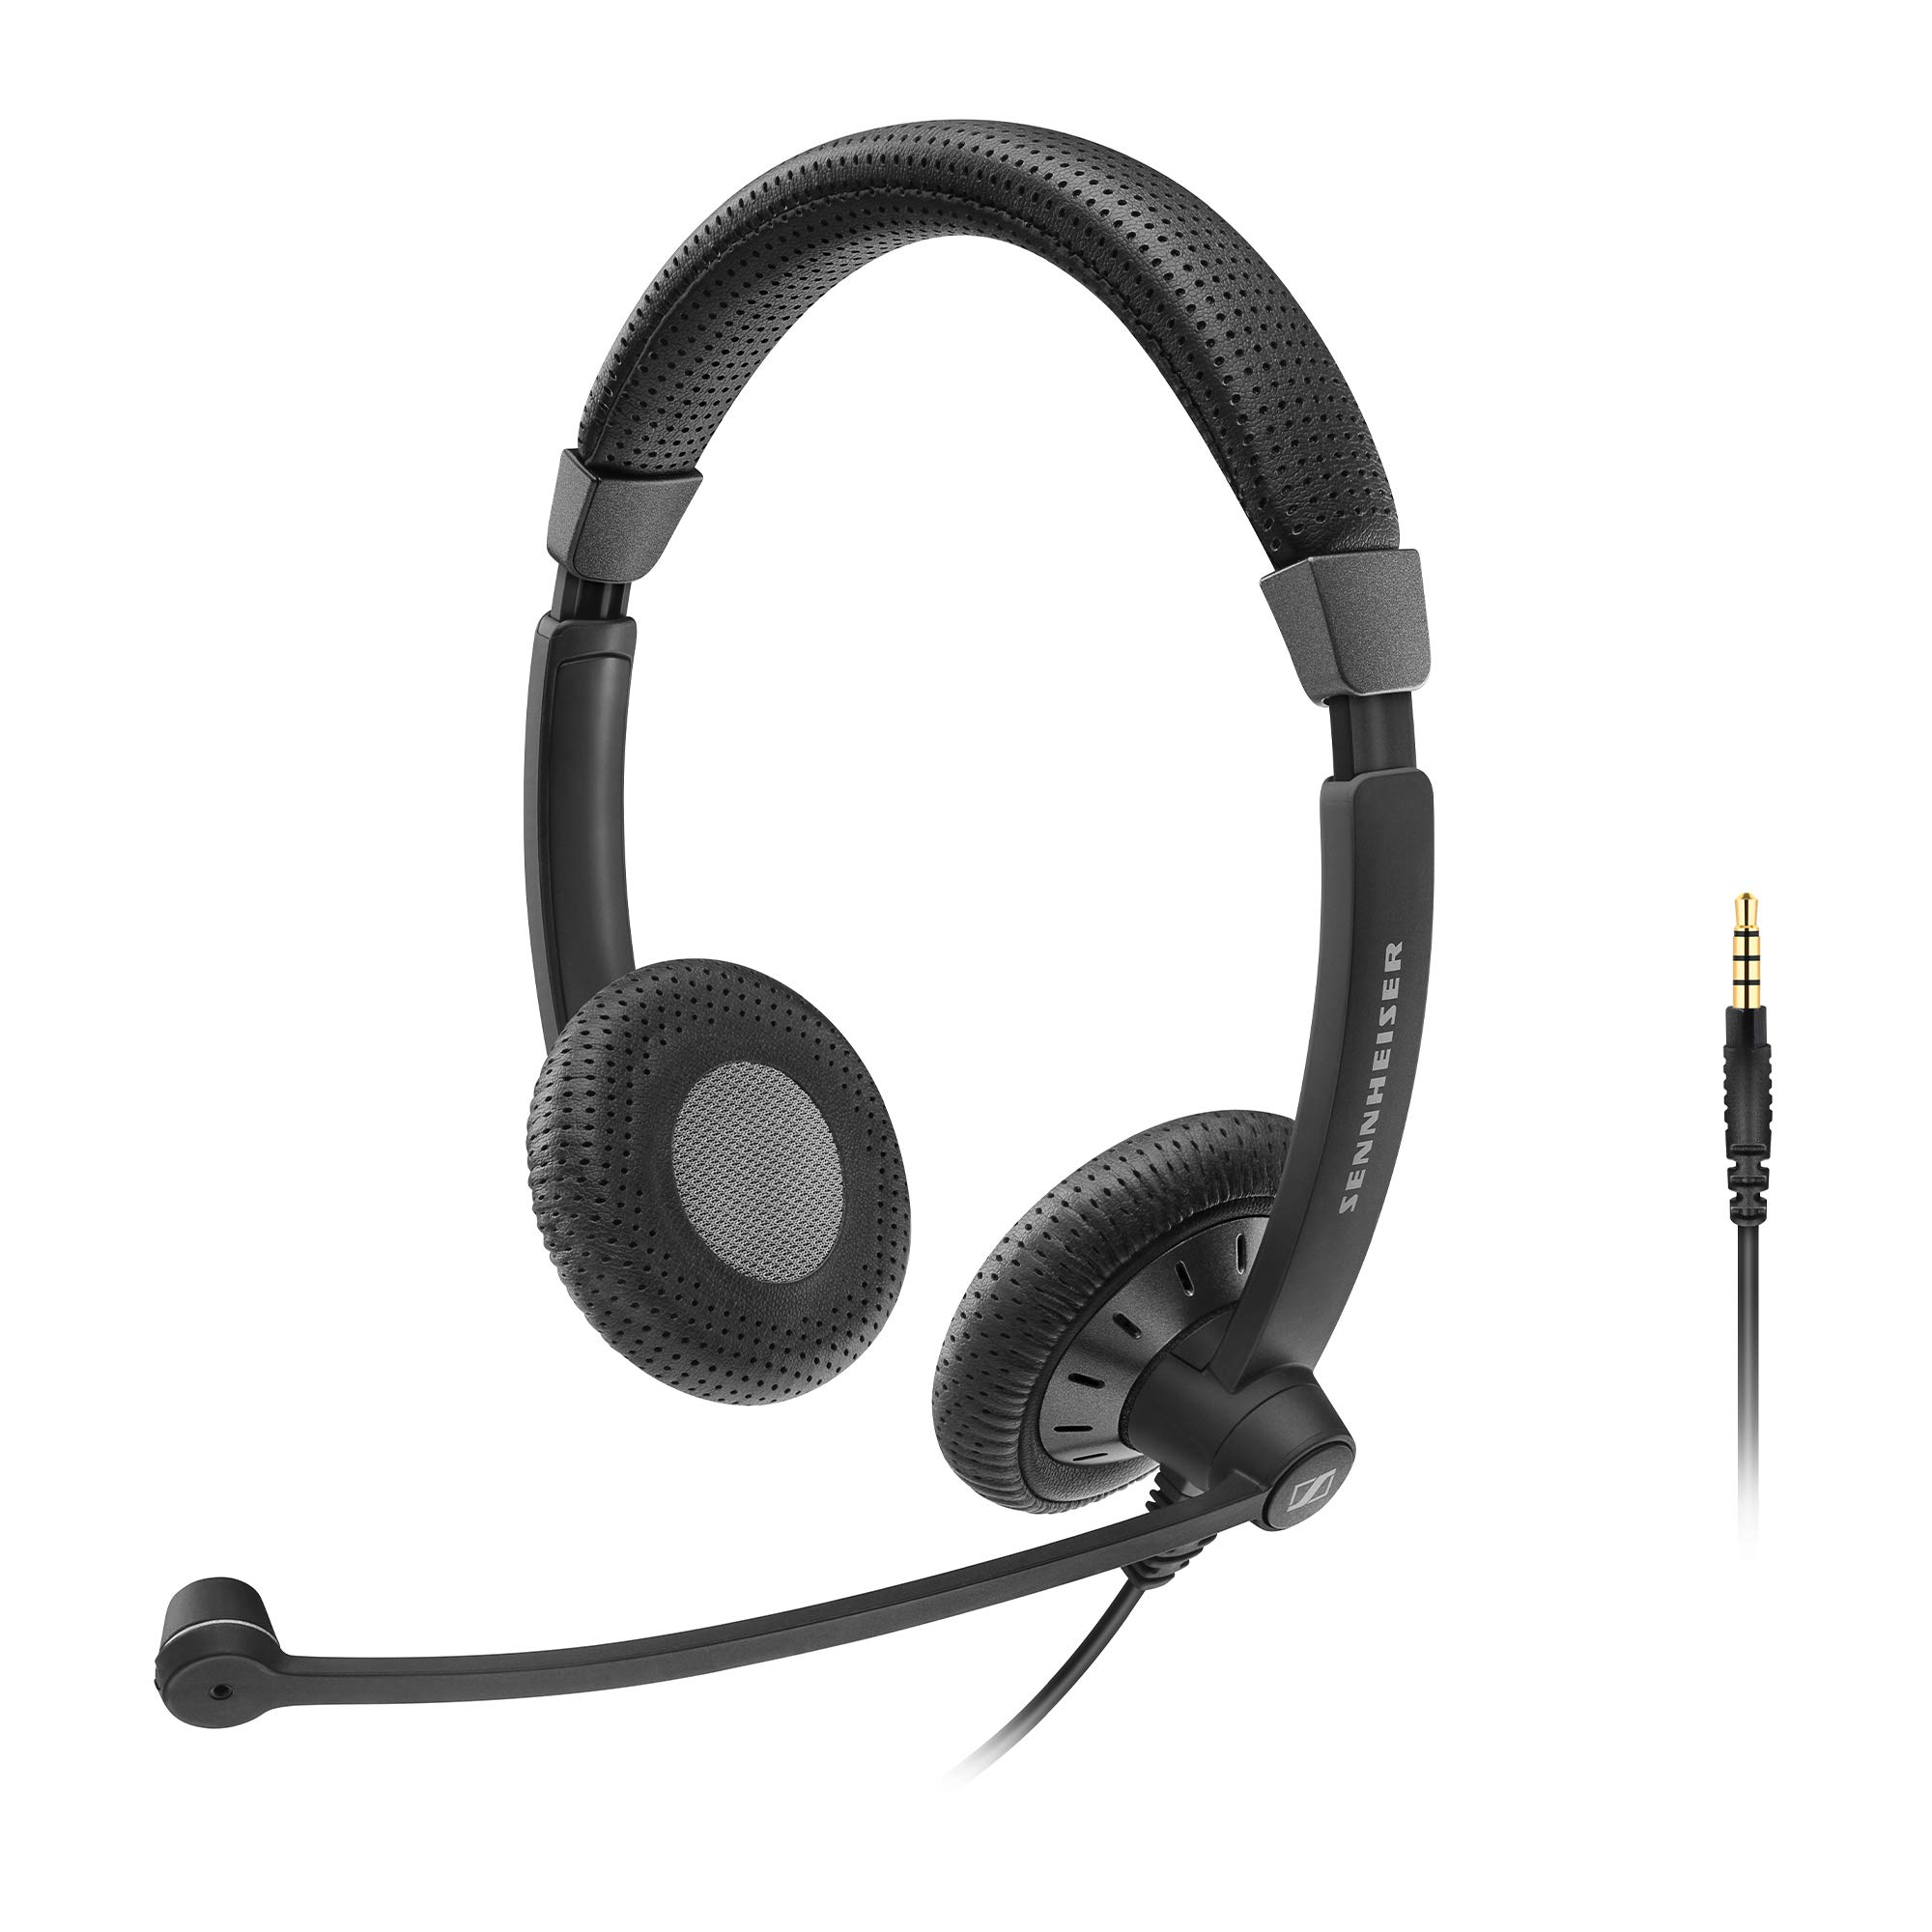 Sennheiser SC 75 (507085) - Double-Sided Business Headset | For Mobile Phone and Tablet | with HD Sound & Noise-Cancelling Microphone (Black) by Sennheiser Enterprise Solution (Image #1)